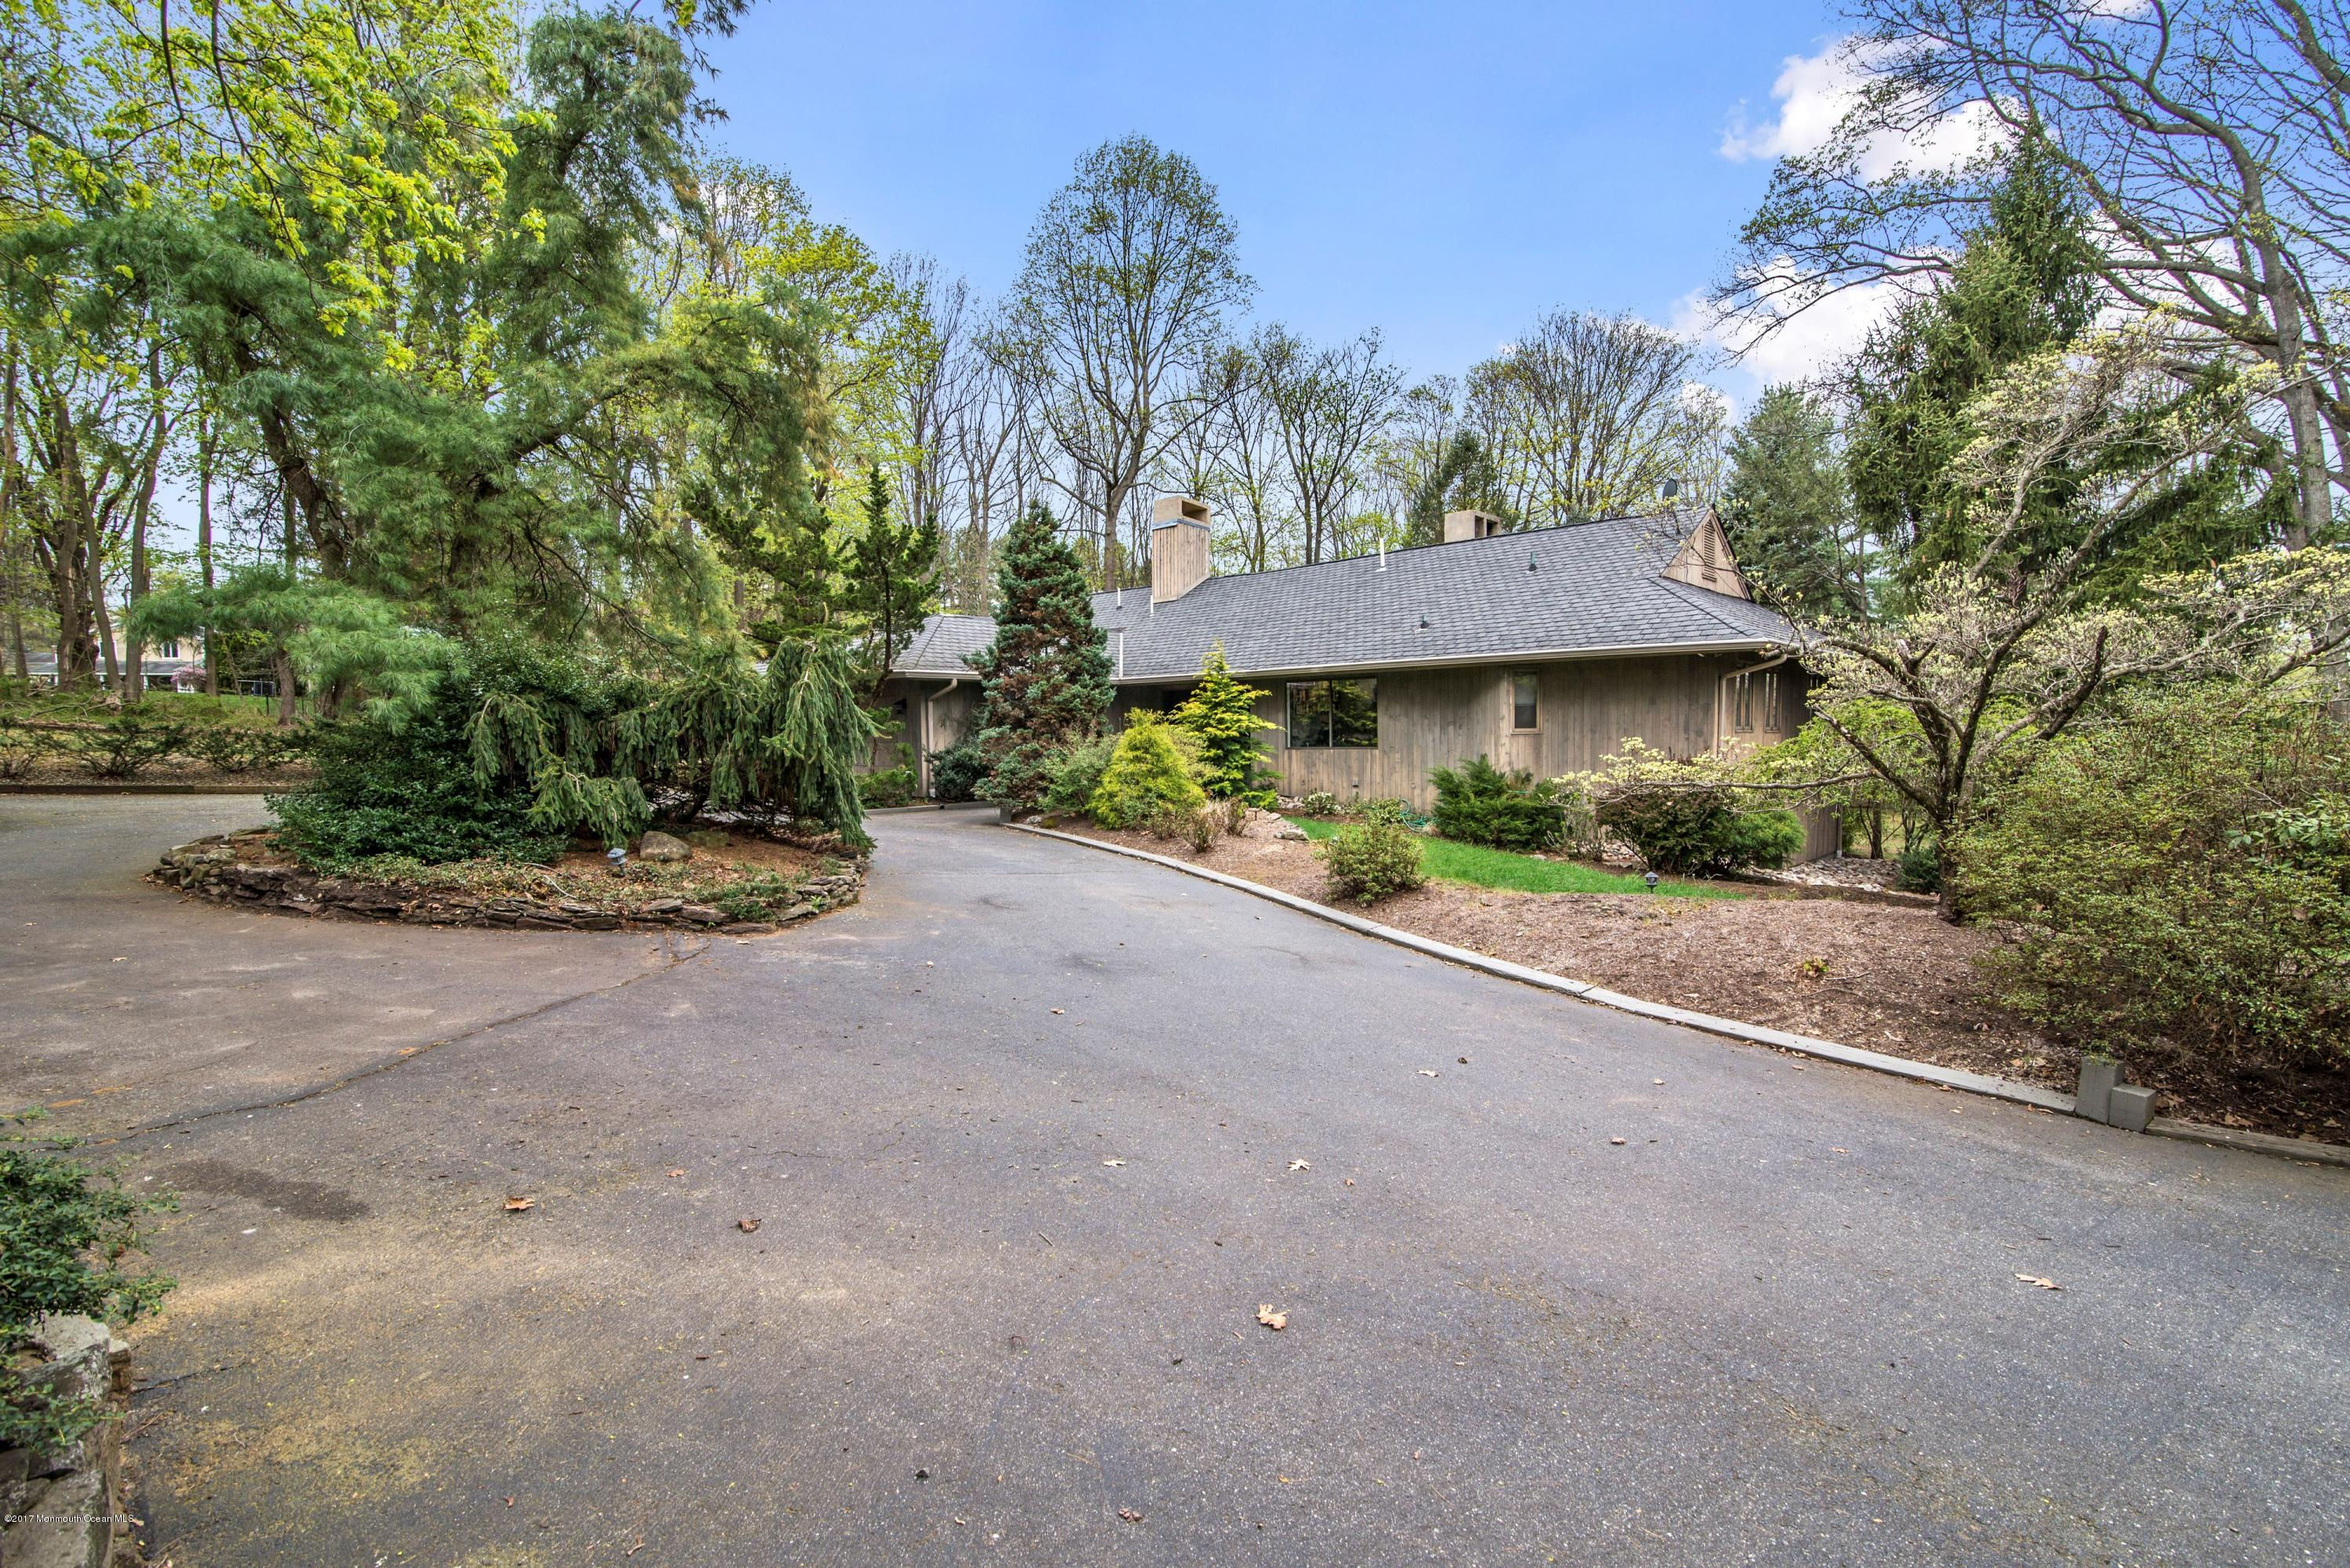 71 W RIVER ROAD, RUMSON, NJ 07760